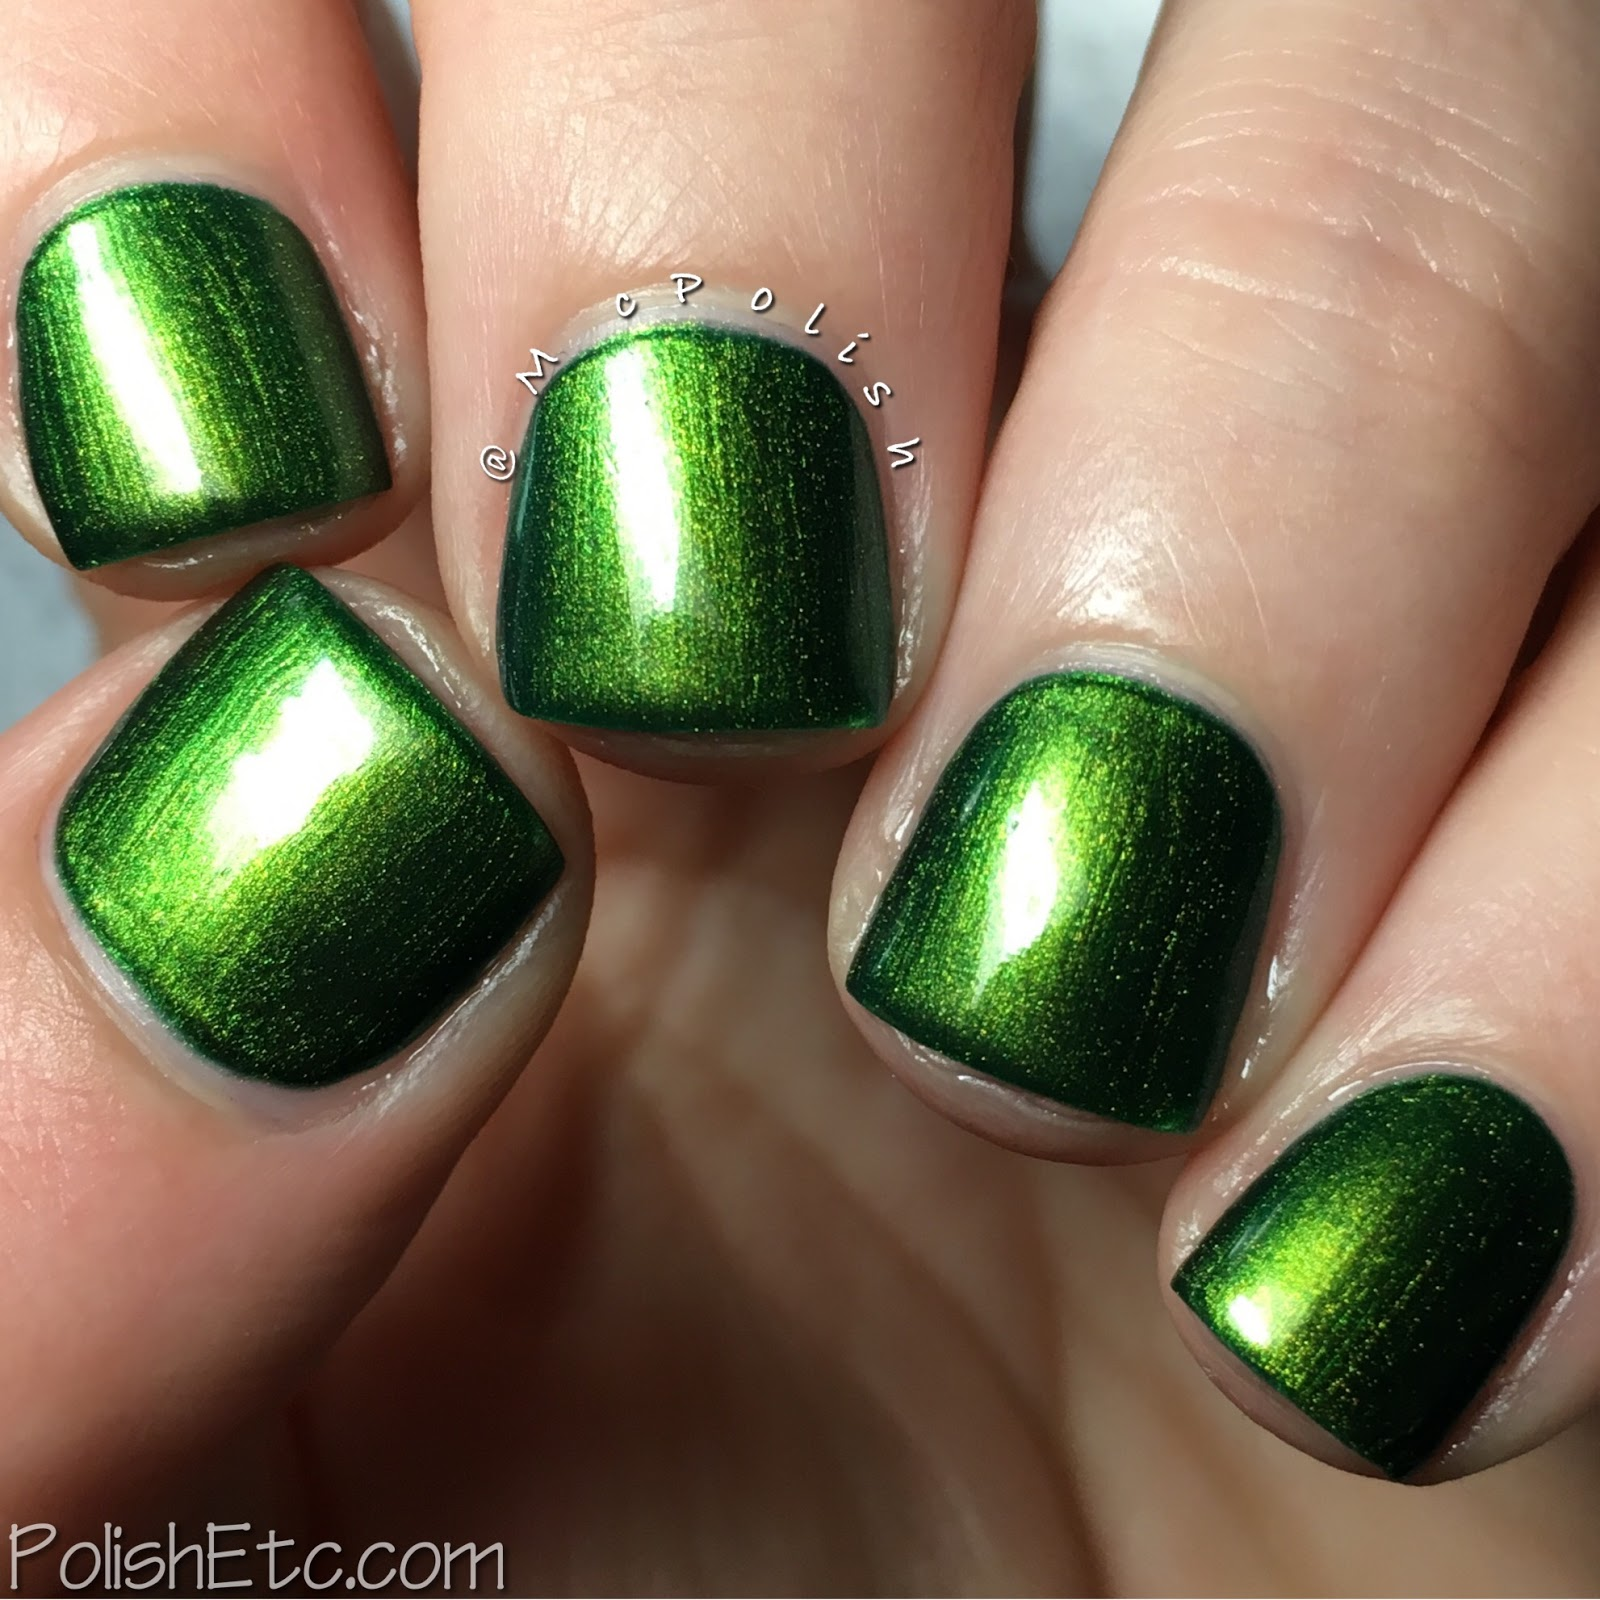 Great Lakes Lacquer - Polishing Poetic Collection - McPolish - Leave No Step Had Trodden